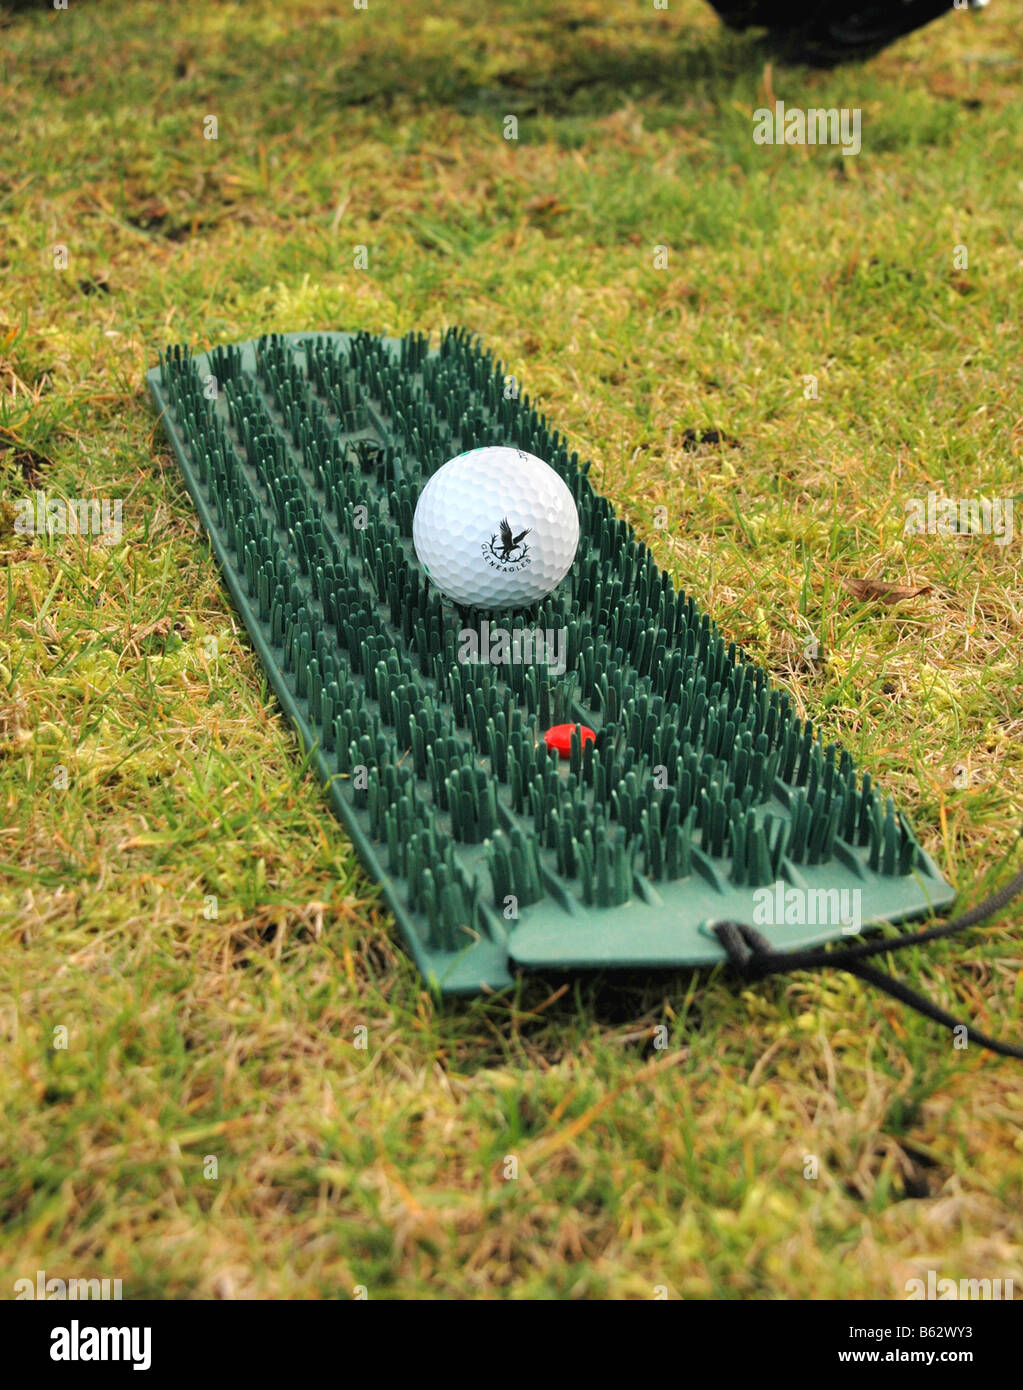 A Golf Mat For Winter Use And Golf Ball Stock Photo Royalty Free Image 20962567 Alamy